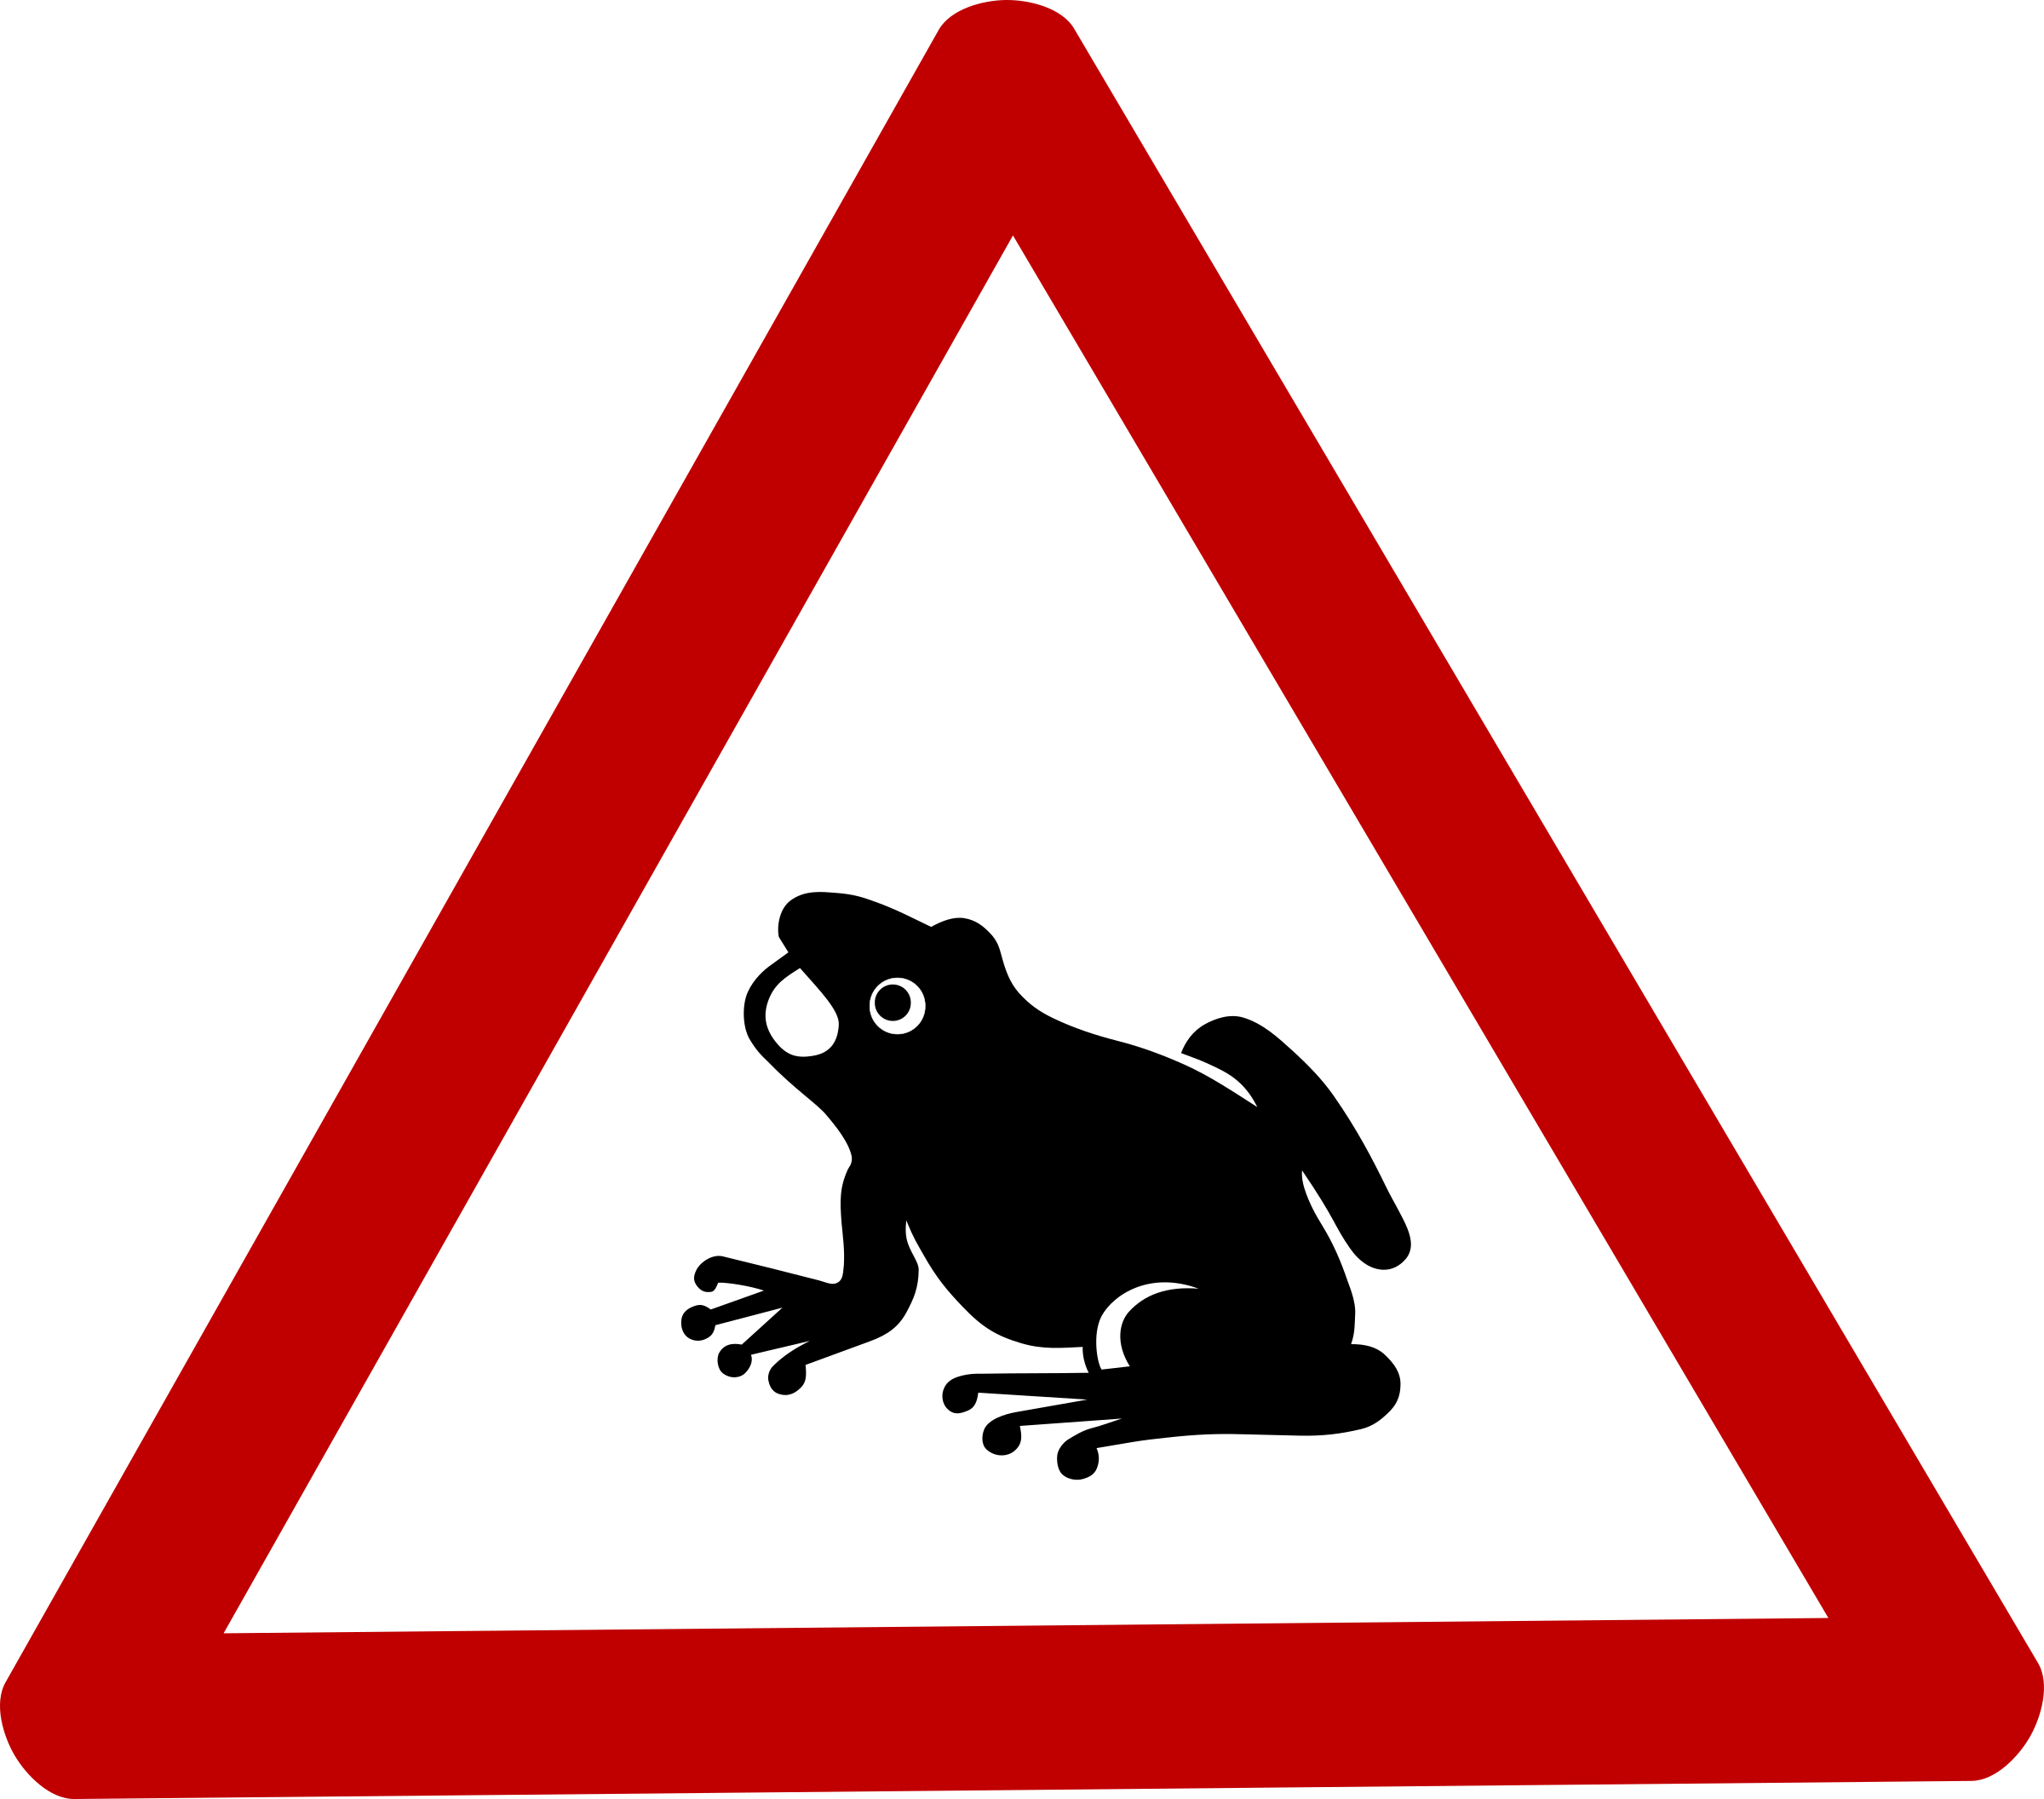 Caution Frog Sign by wipp